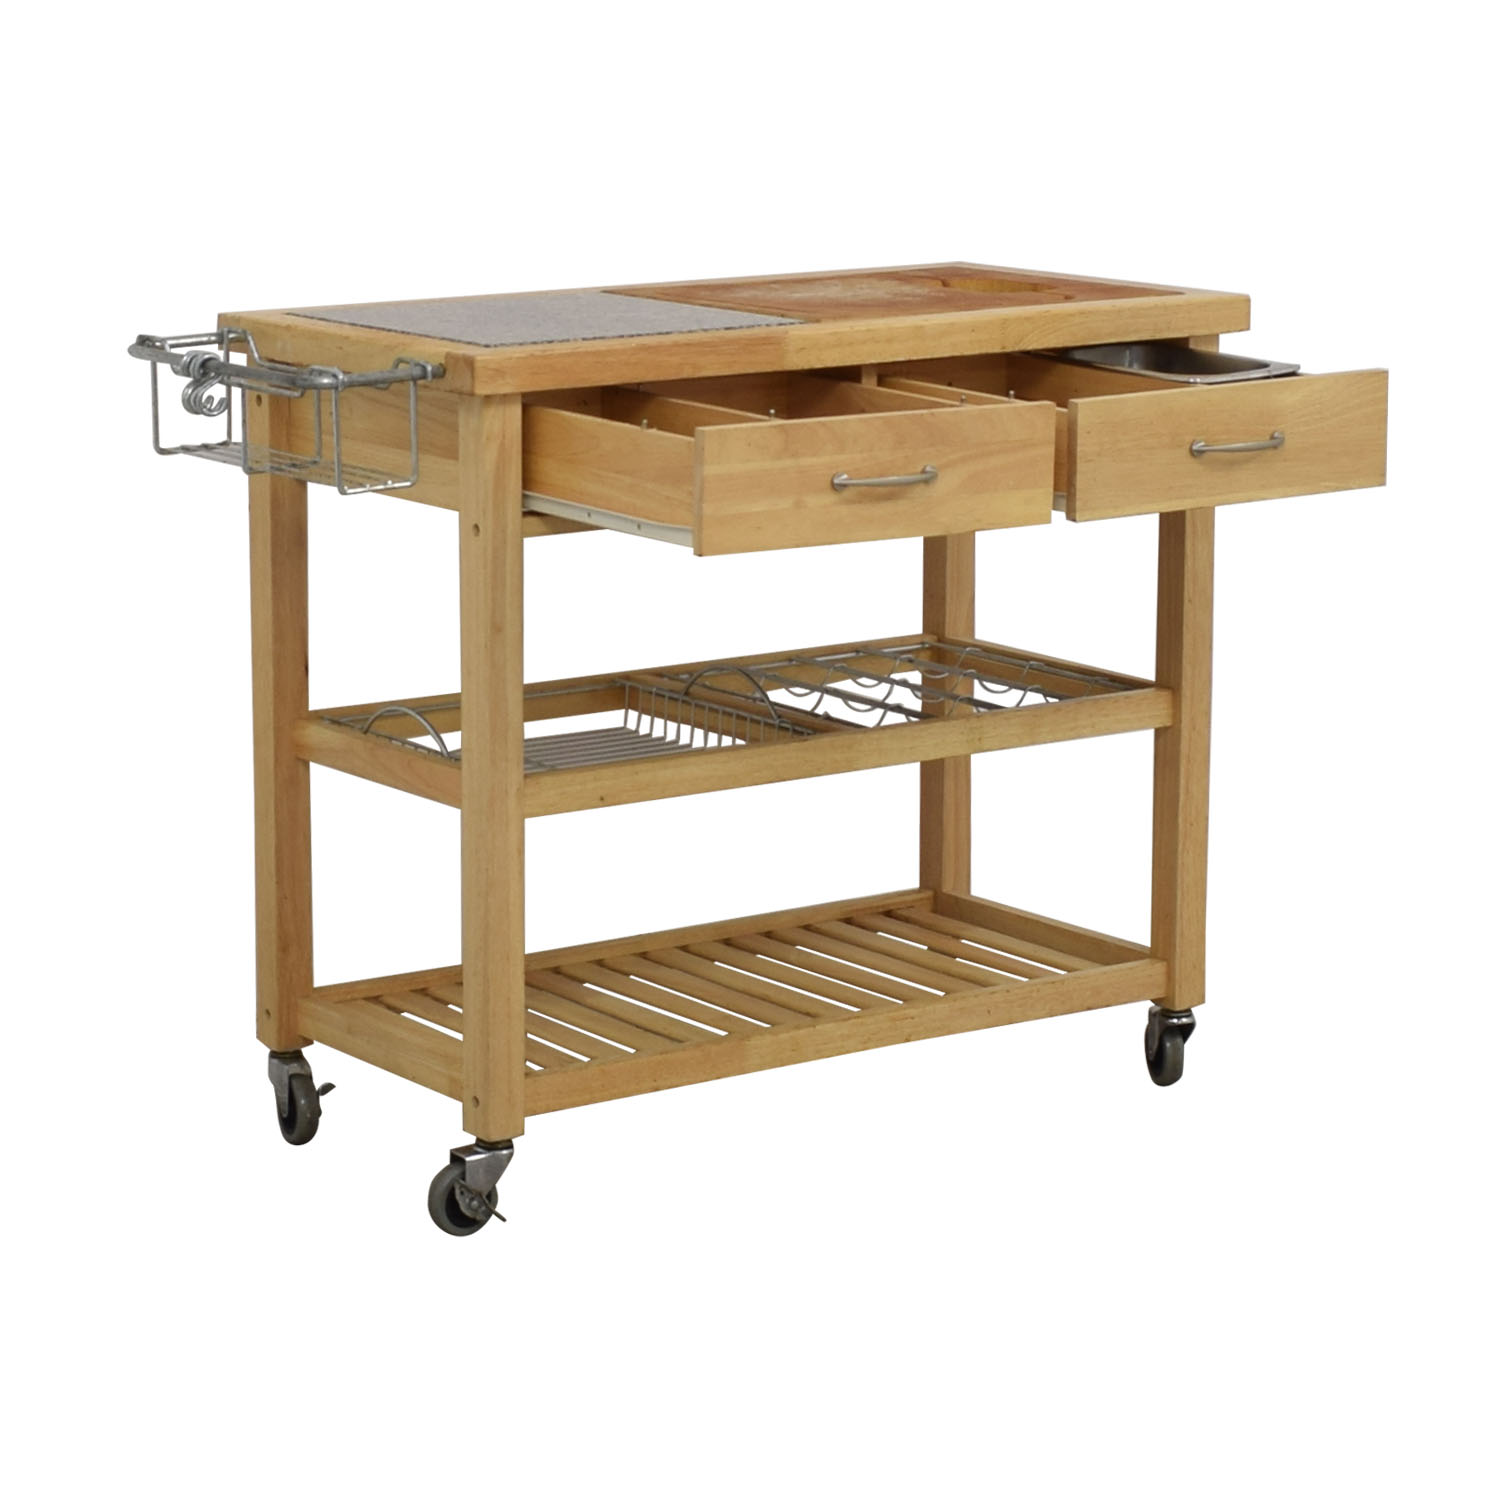 buy Pottery Barn Pottery Barn Rolling Utility Table online